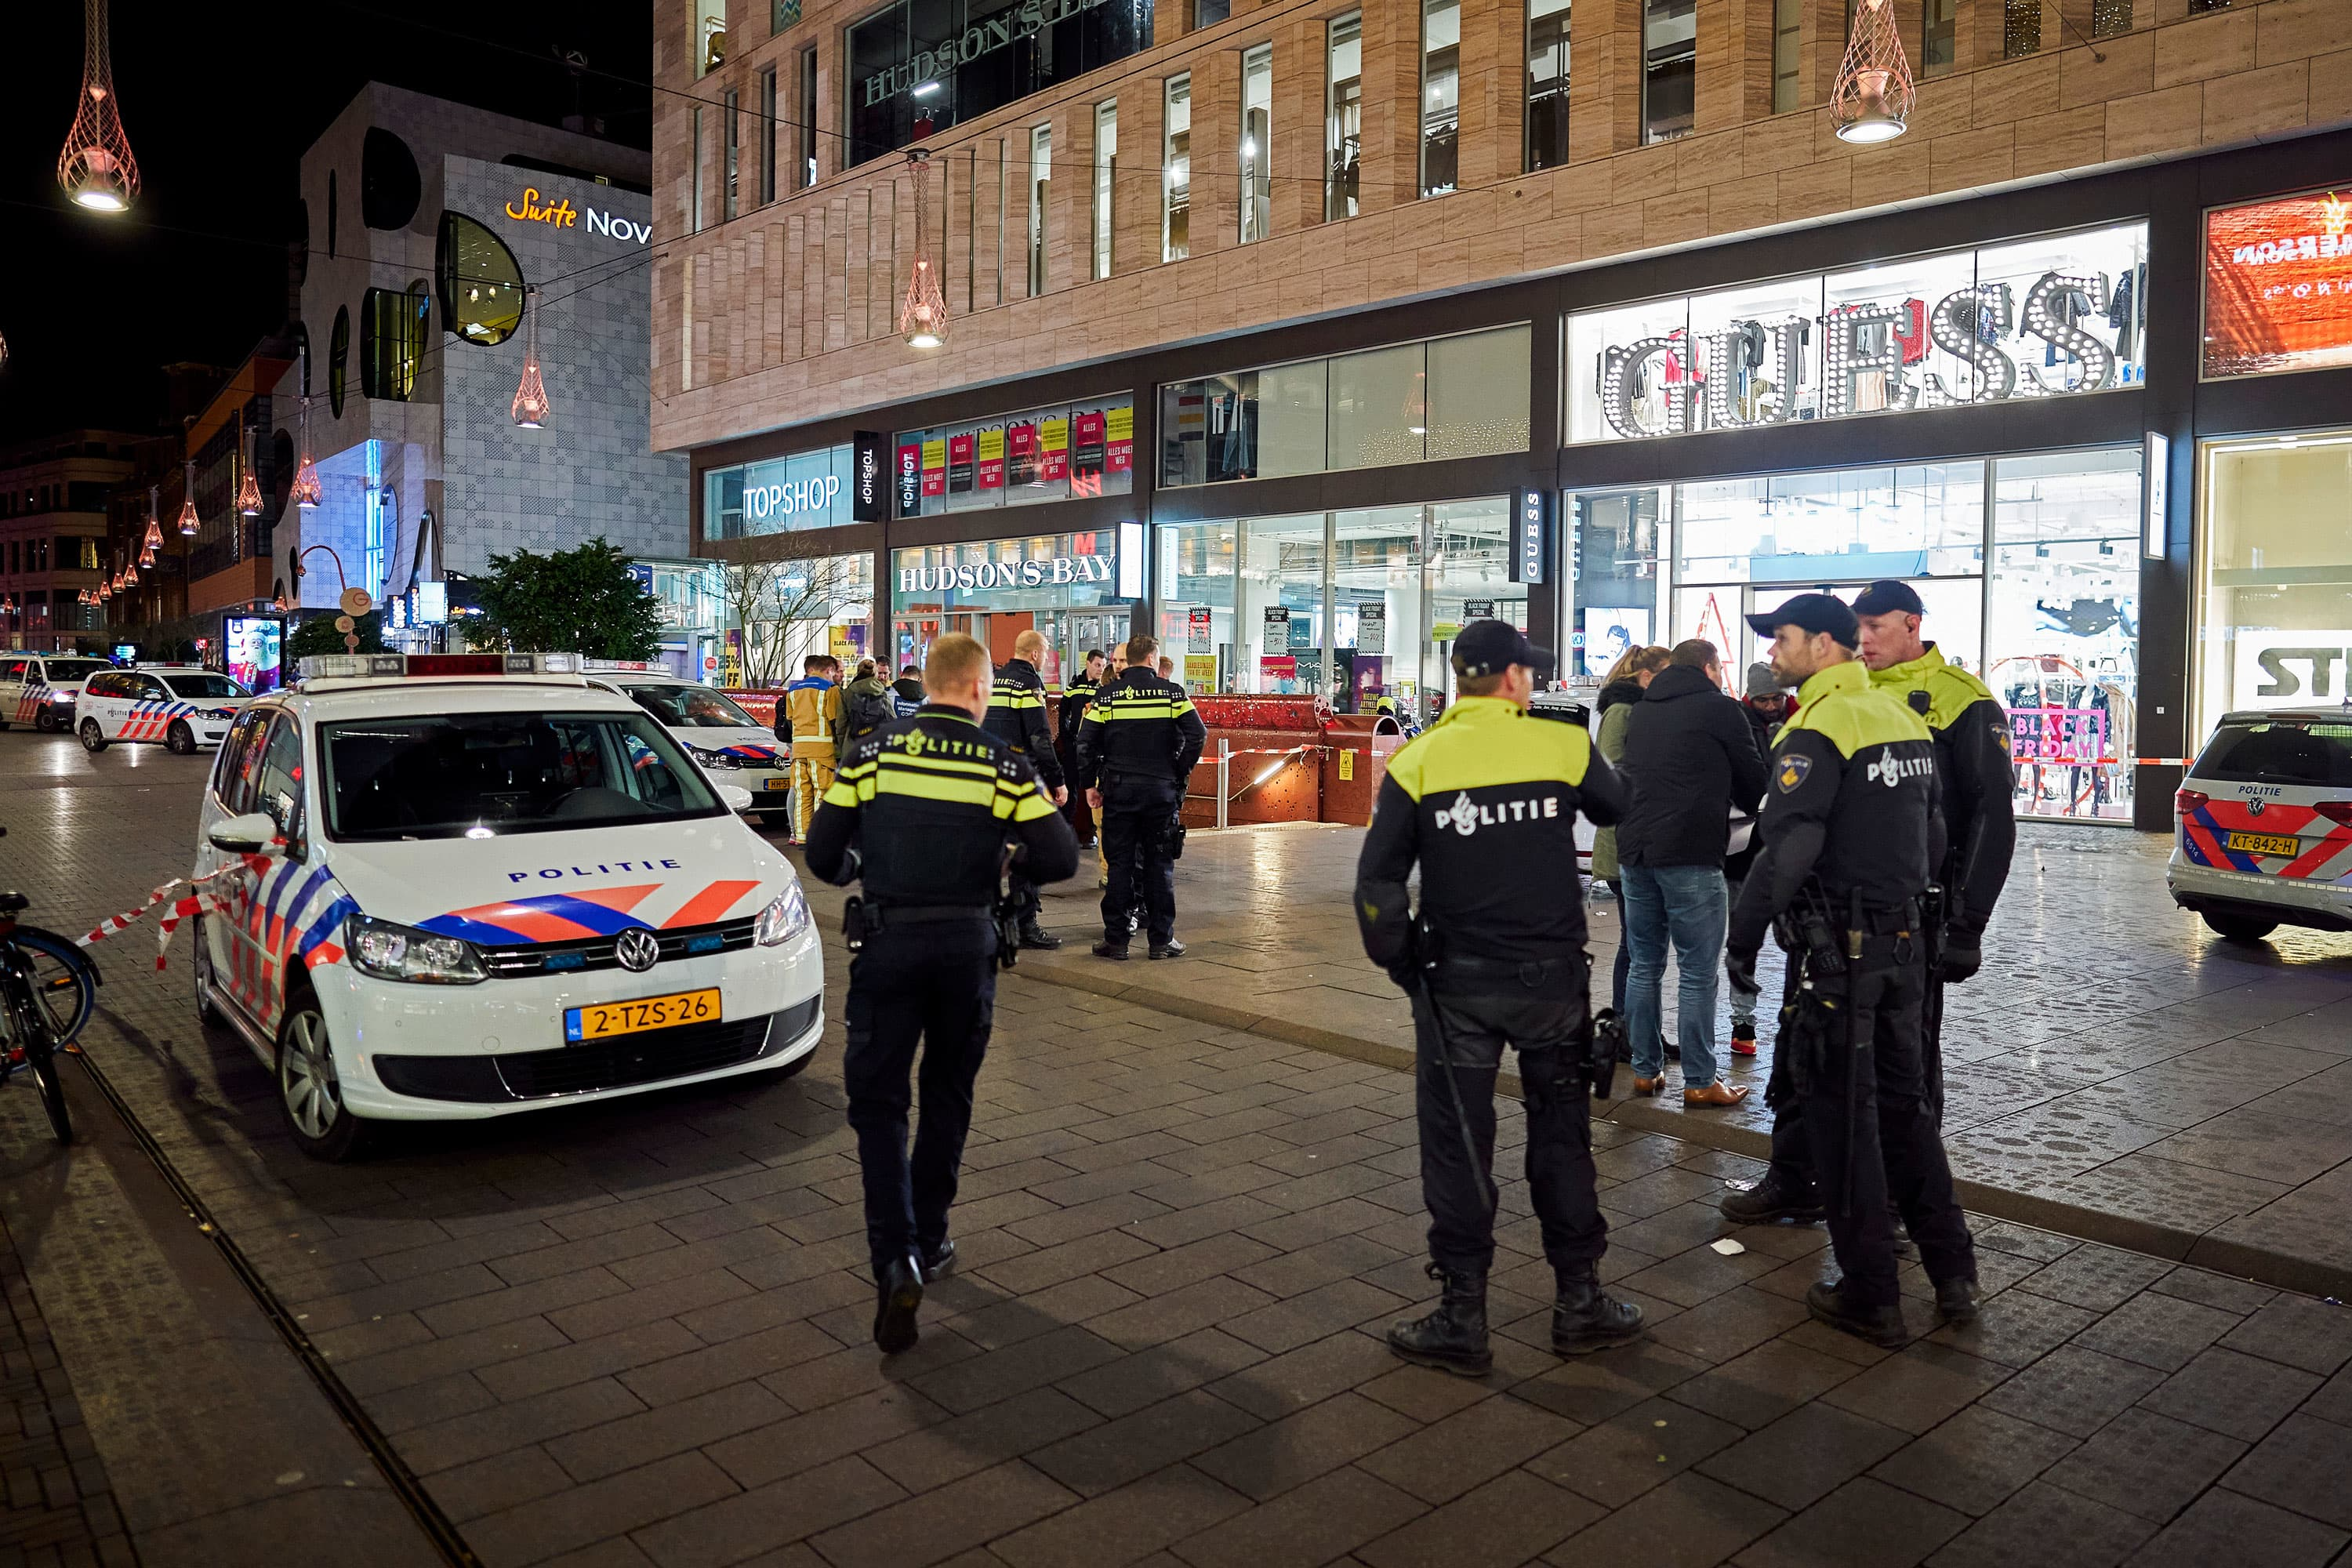 Several people wounded in stabbing on shopping street in The Hague